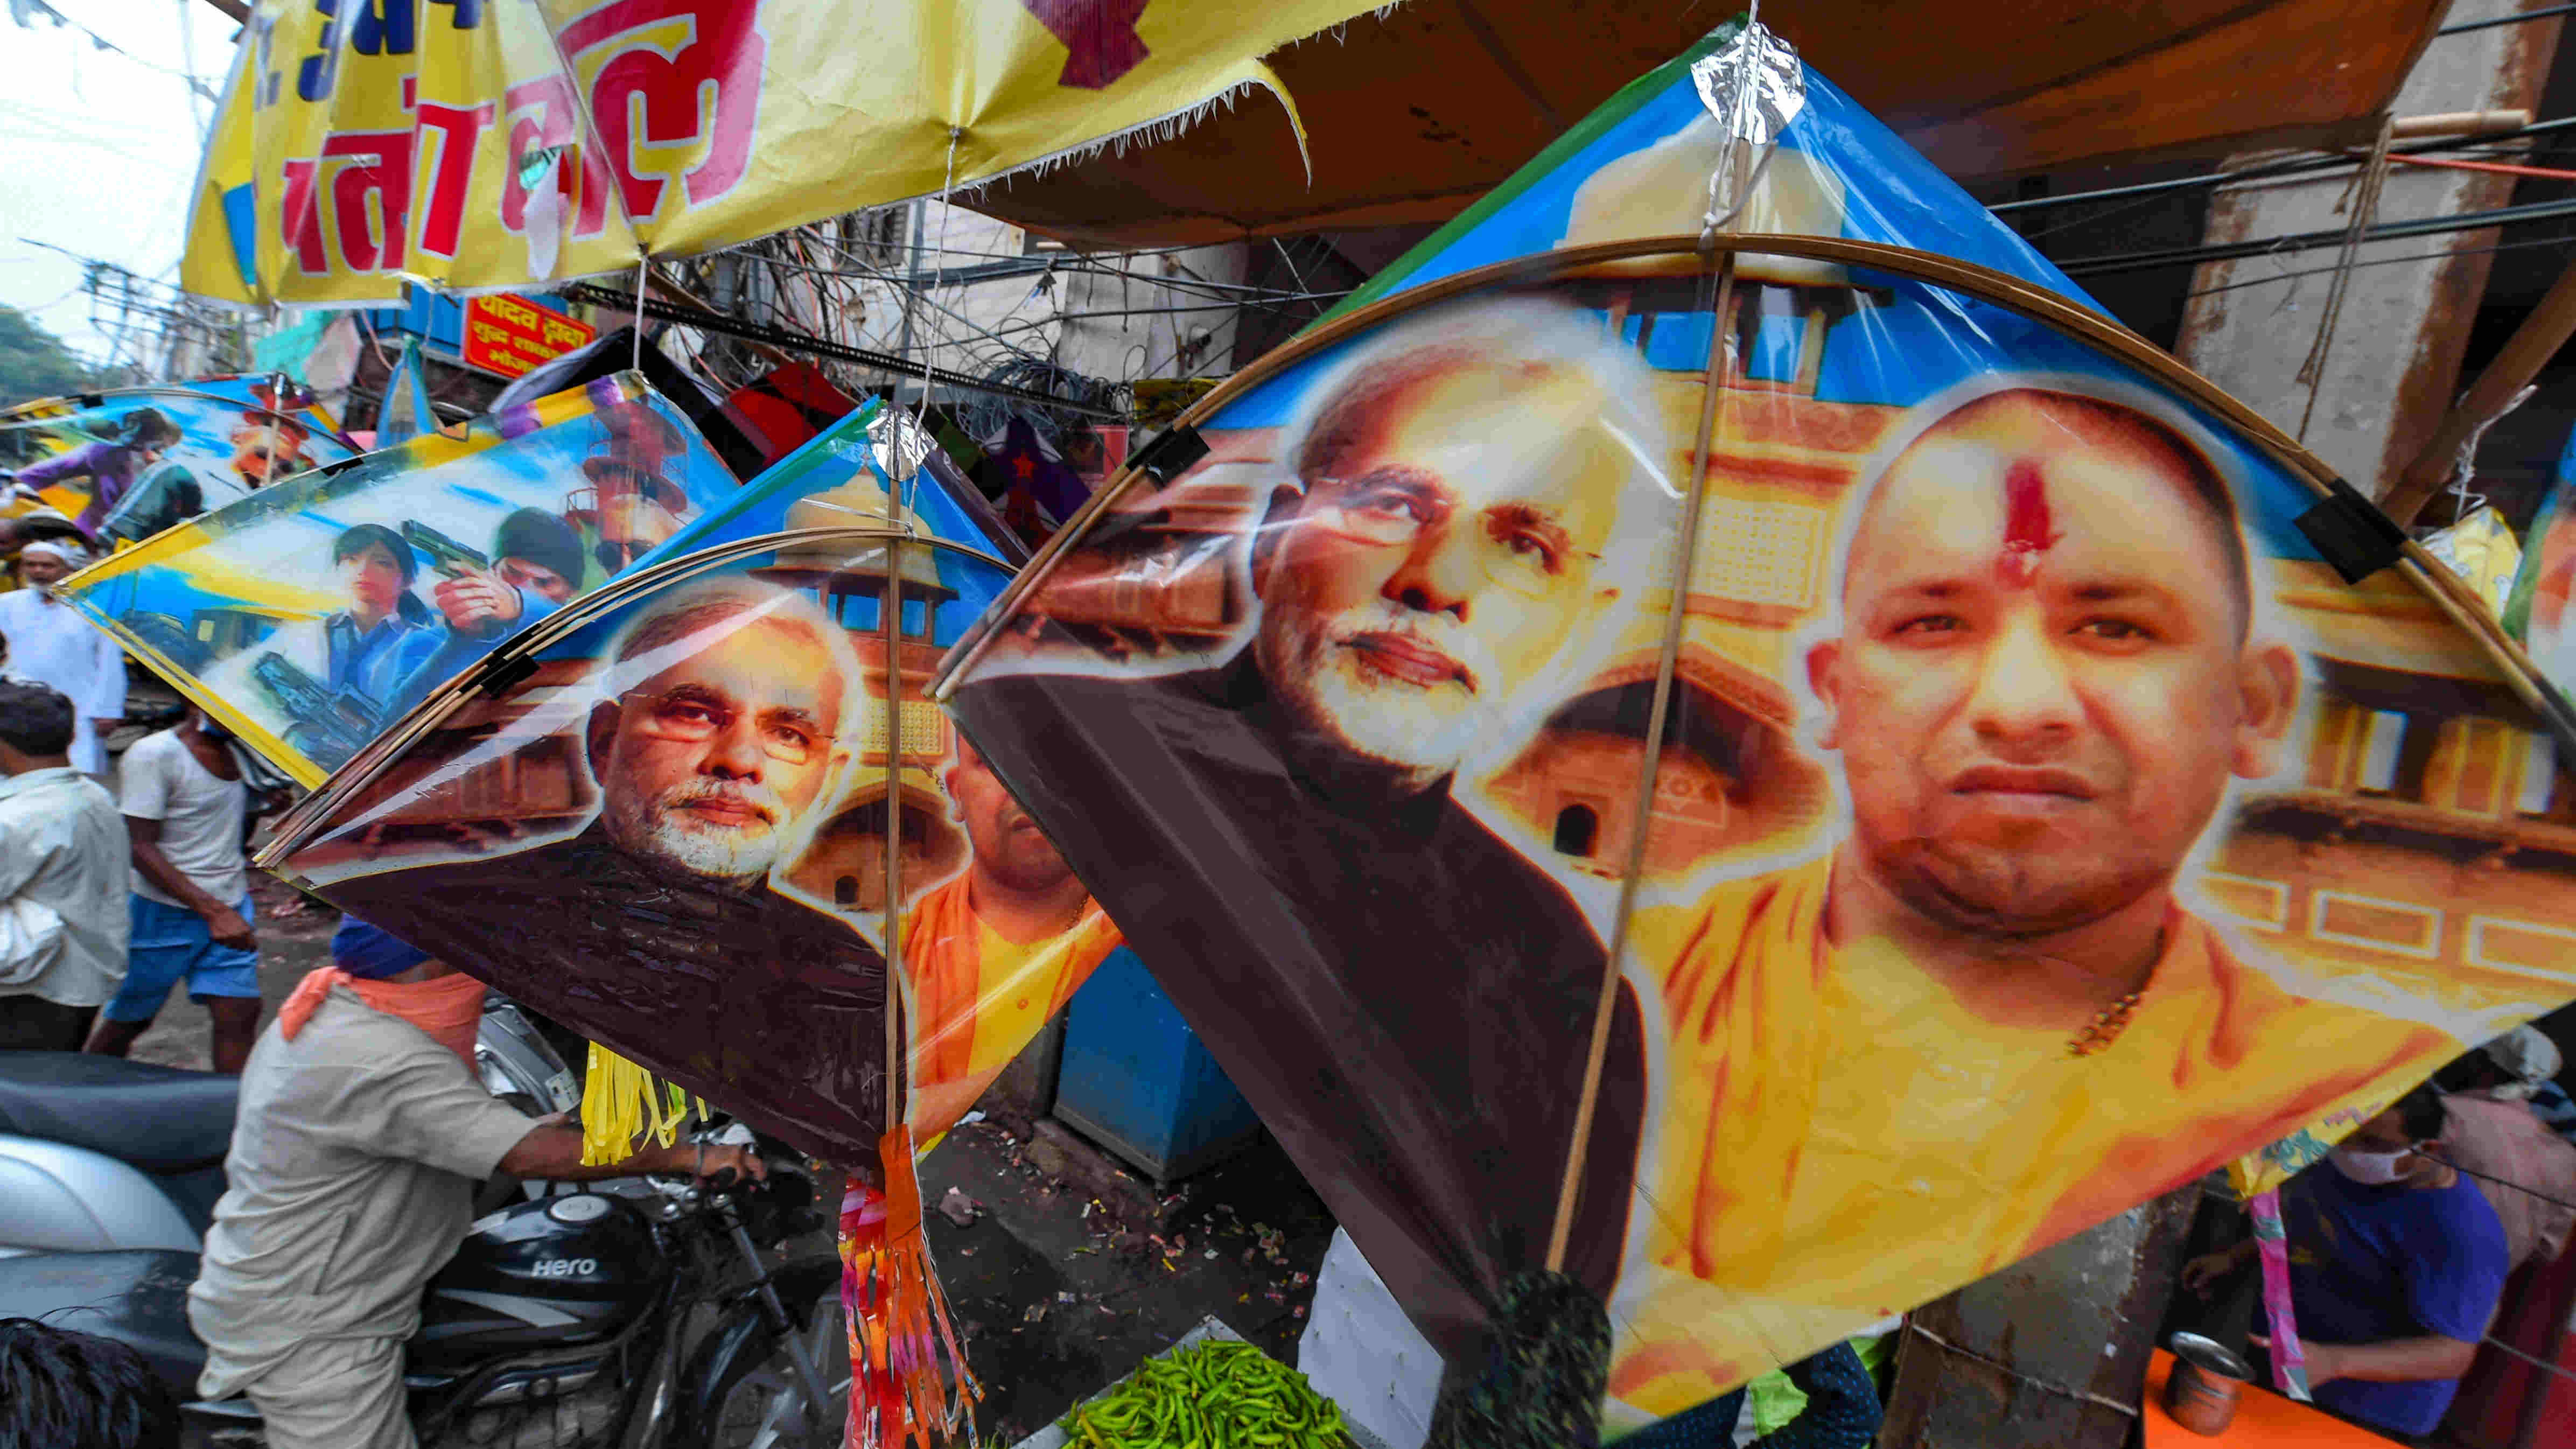 Kites with images of Modi and Yogi Adityanath displayed outside a shop ahead of Independence Day, New Delhi, Sunday, Aug. 9, 2020.